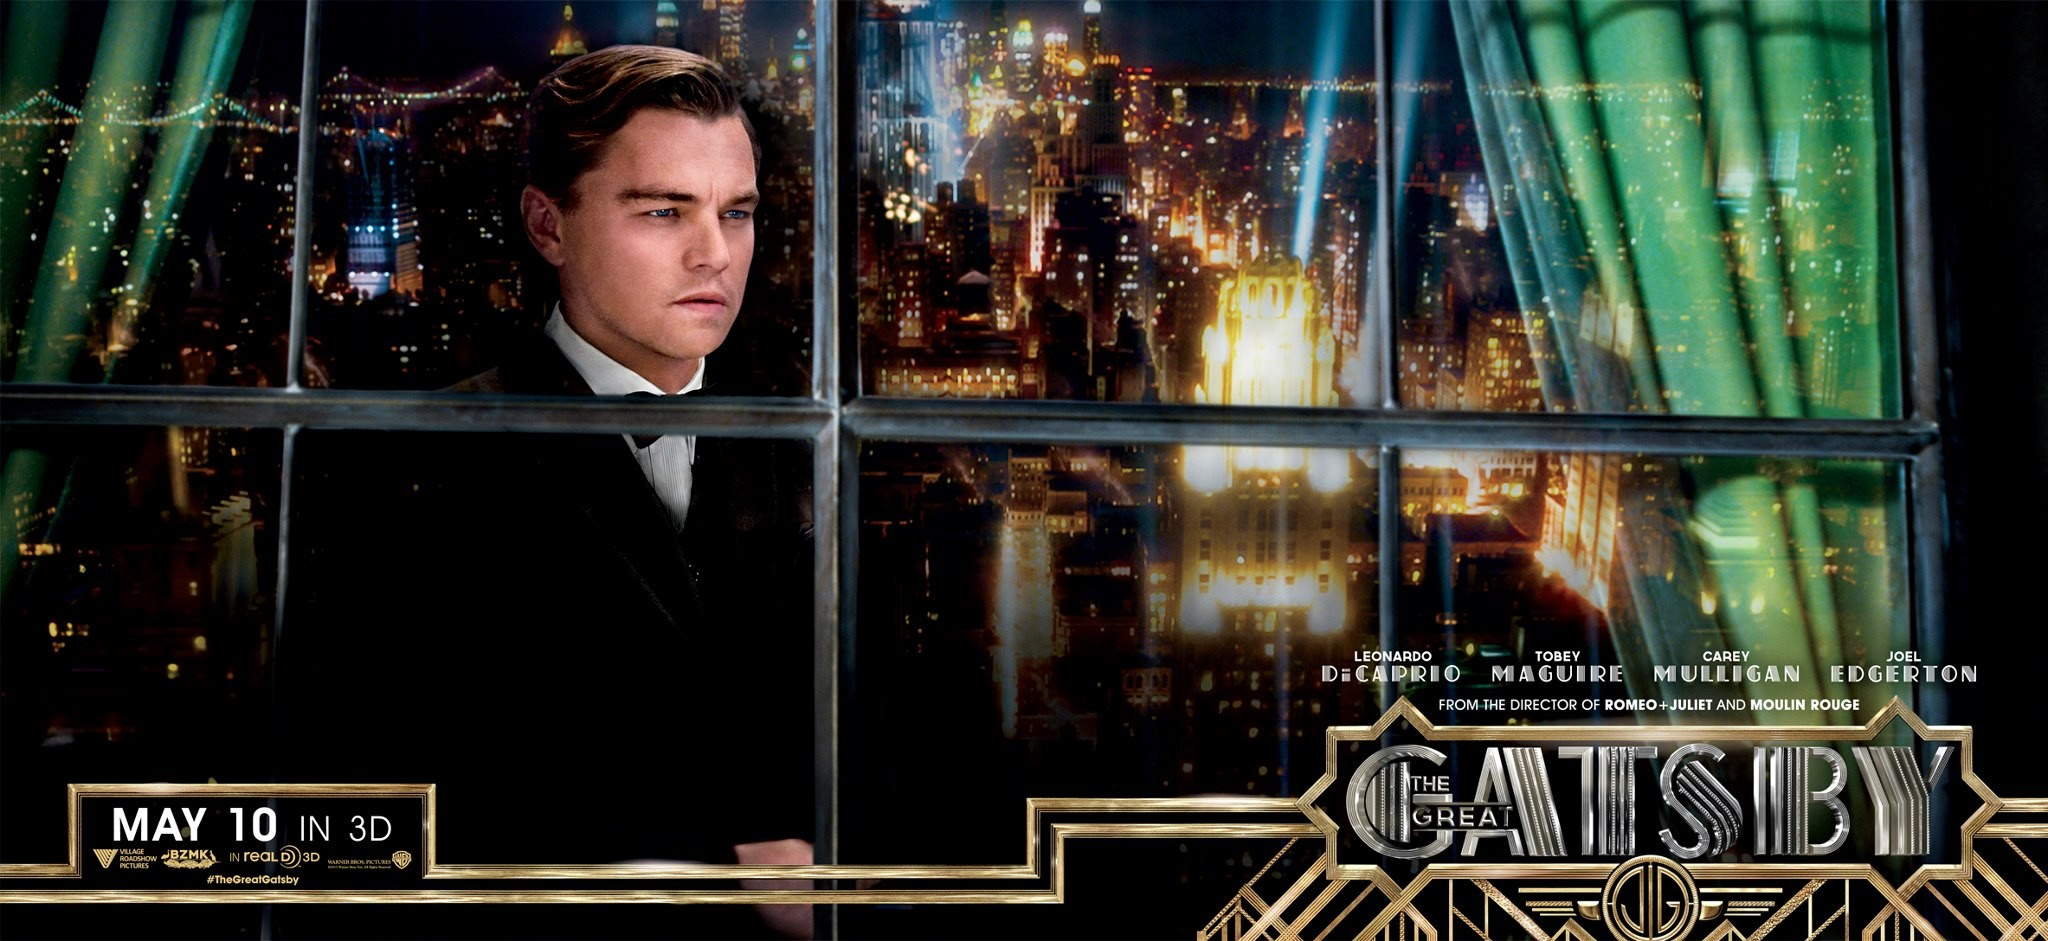 The Great Gatsby Full Movie Download